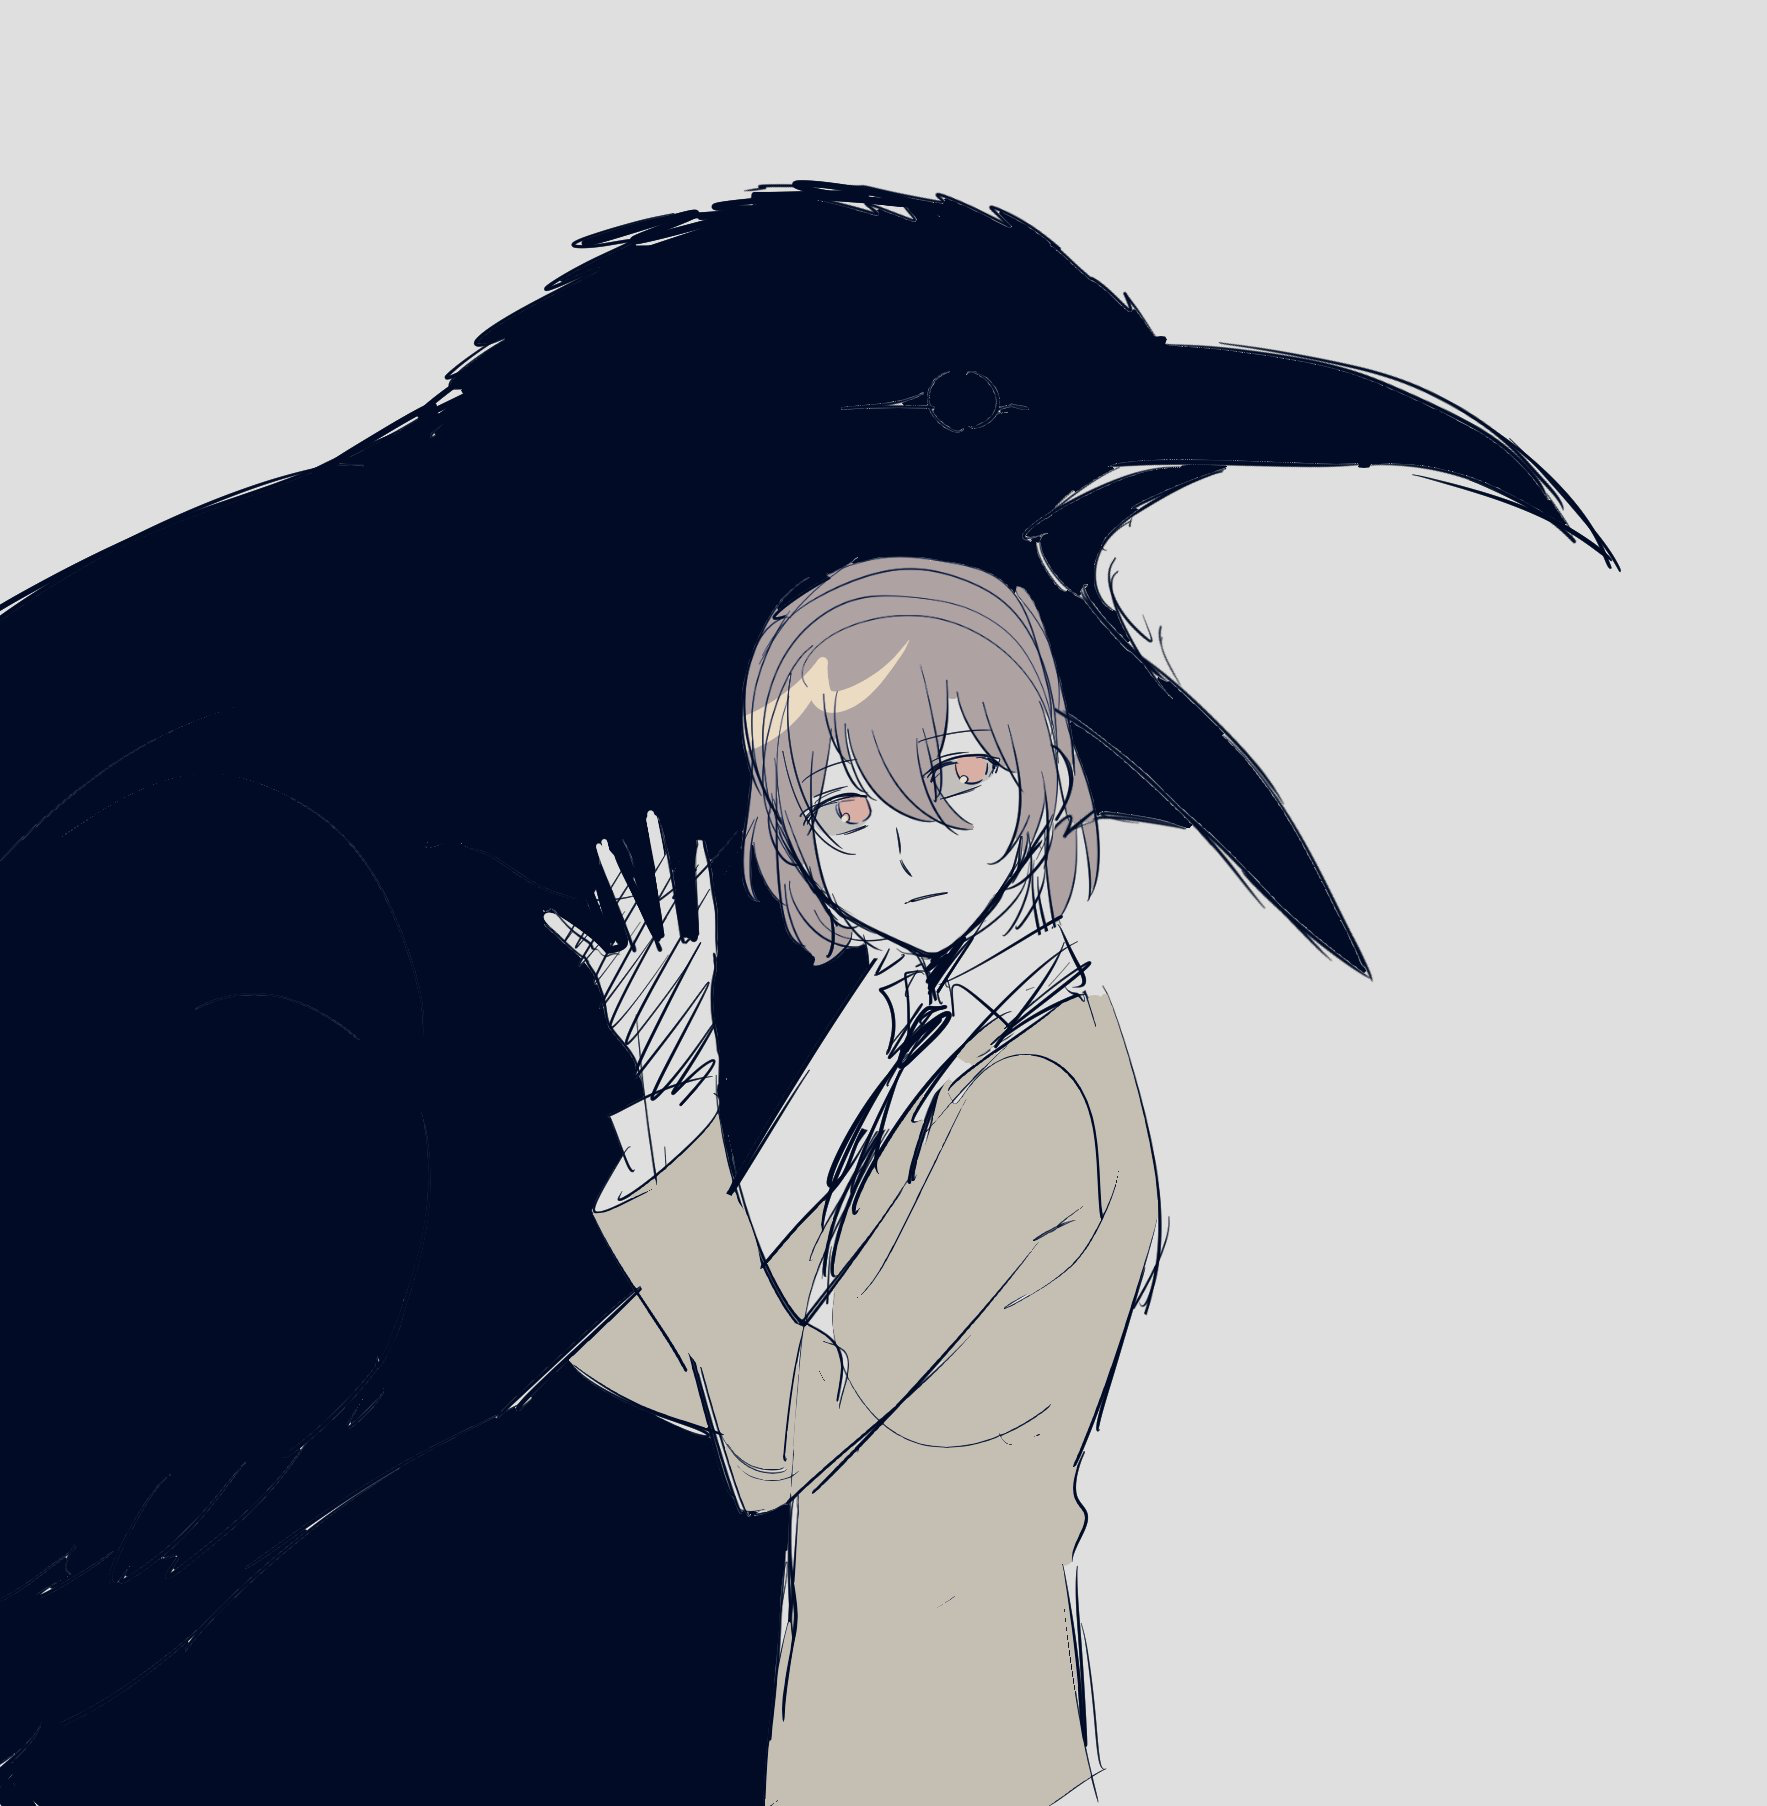 Crows are creepy. They remind me of those plague doctors